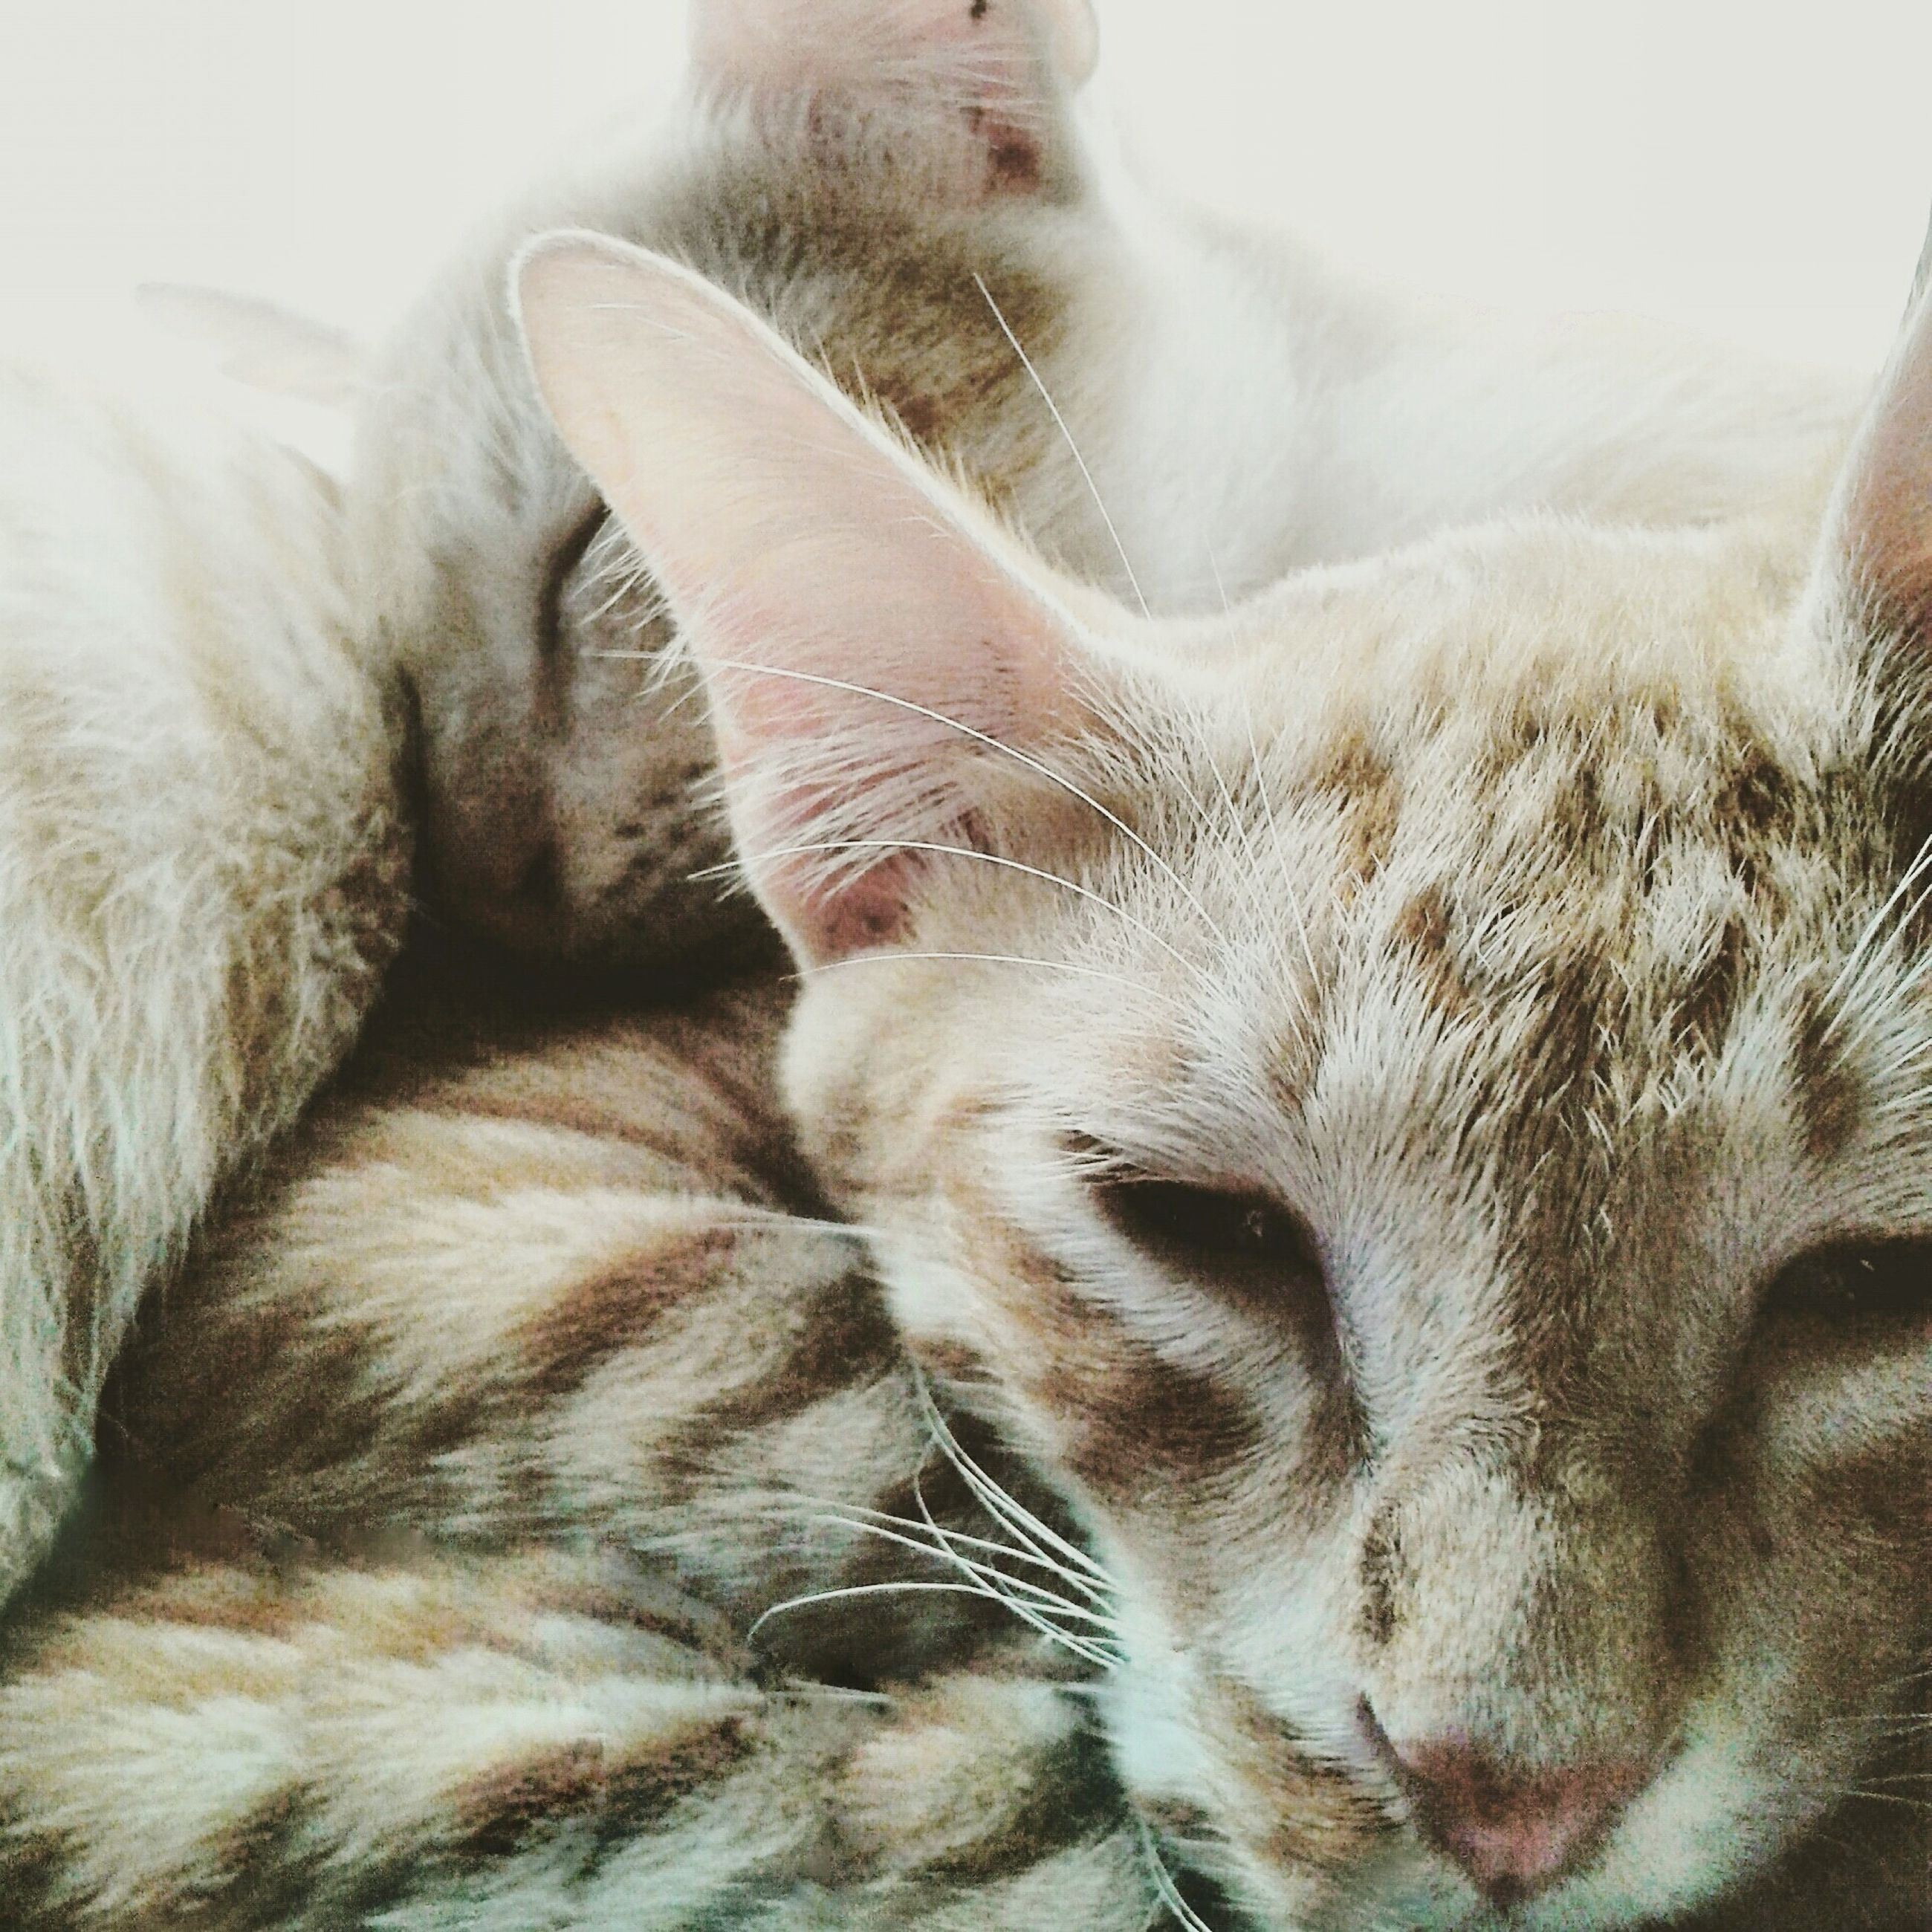 domestic animals, mammal, pets, animal themes, domestic cat, one animal, cat, feline, indoors, whisker, relaxation, close-up, resting, lying down, animal head, sleeping, eyes closed, animal body part, part of, home interior